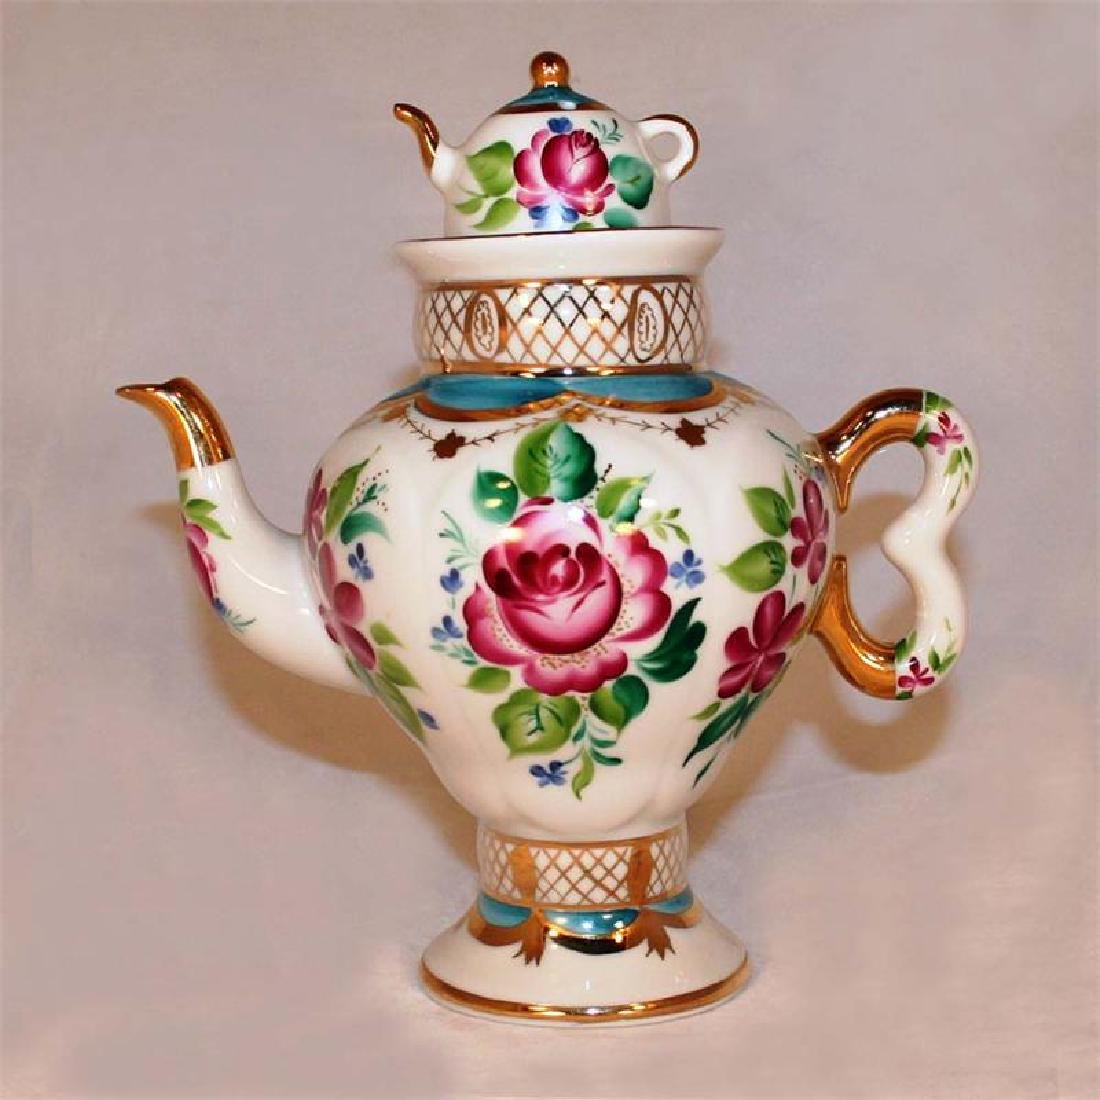 Lomonosov Porcelain Samovar with Teapot